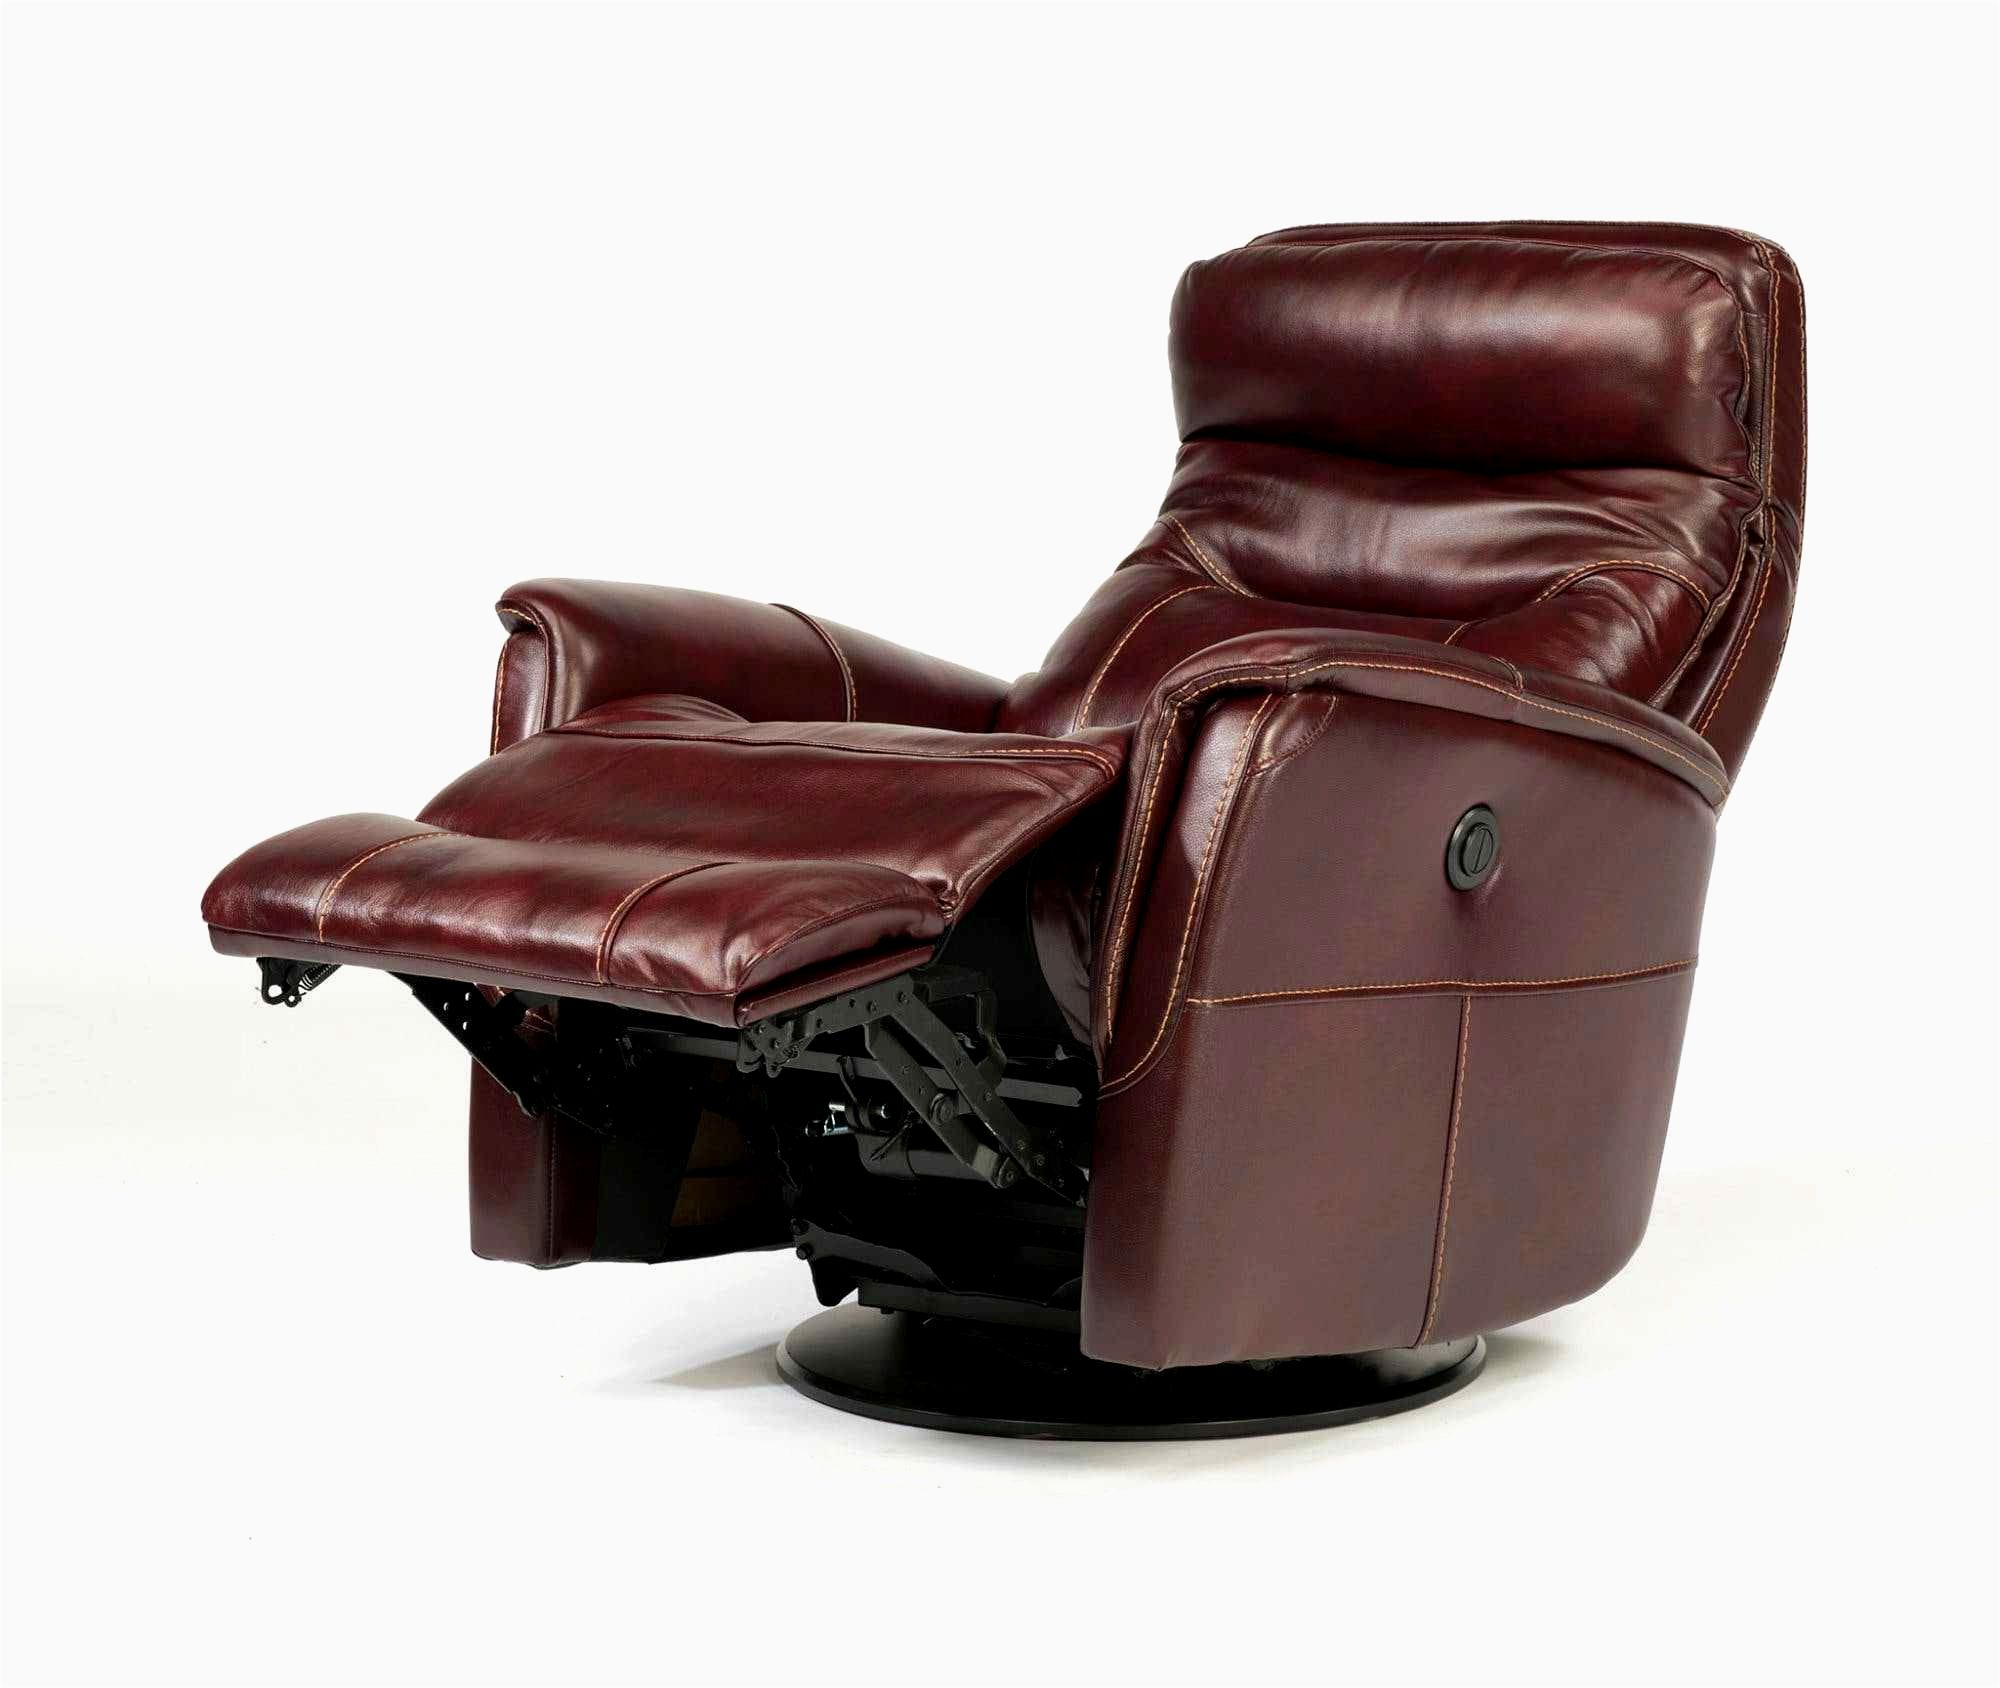 fantastic power recliner sofa image-Finest Power Recliner sofa Inspiration